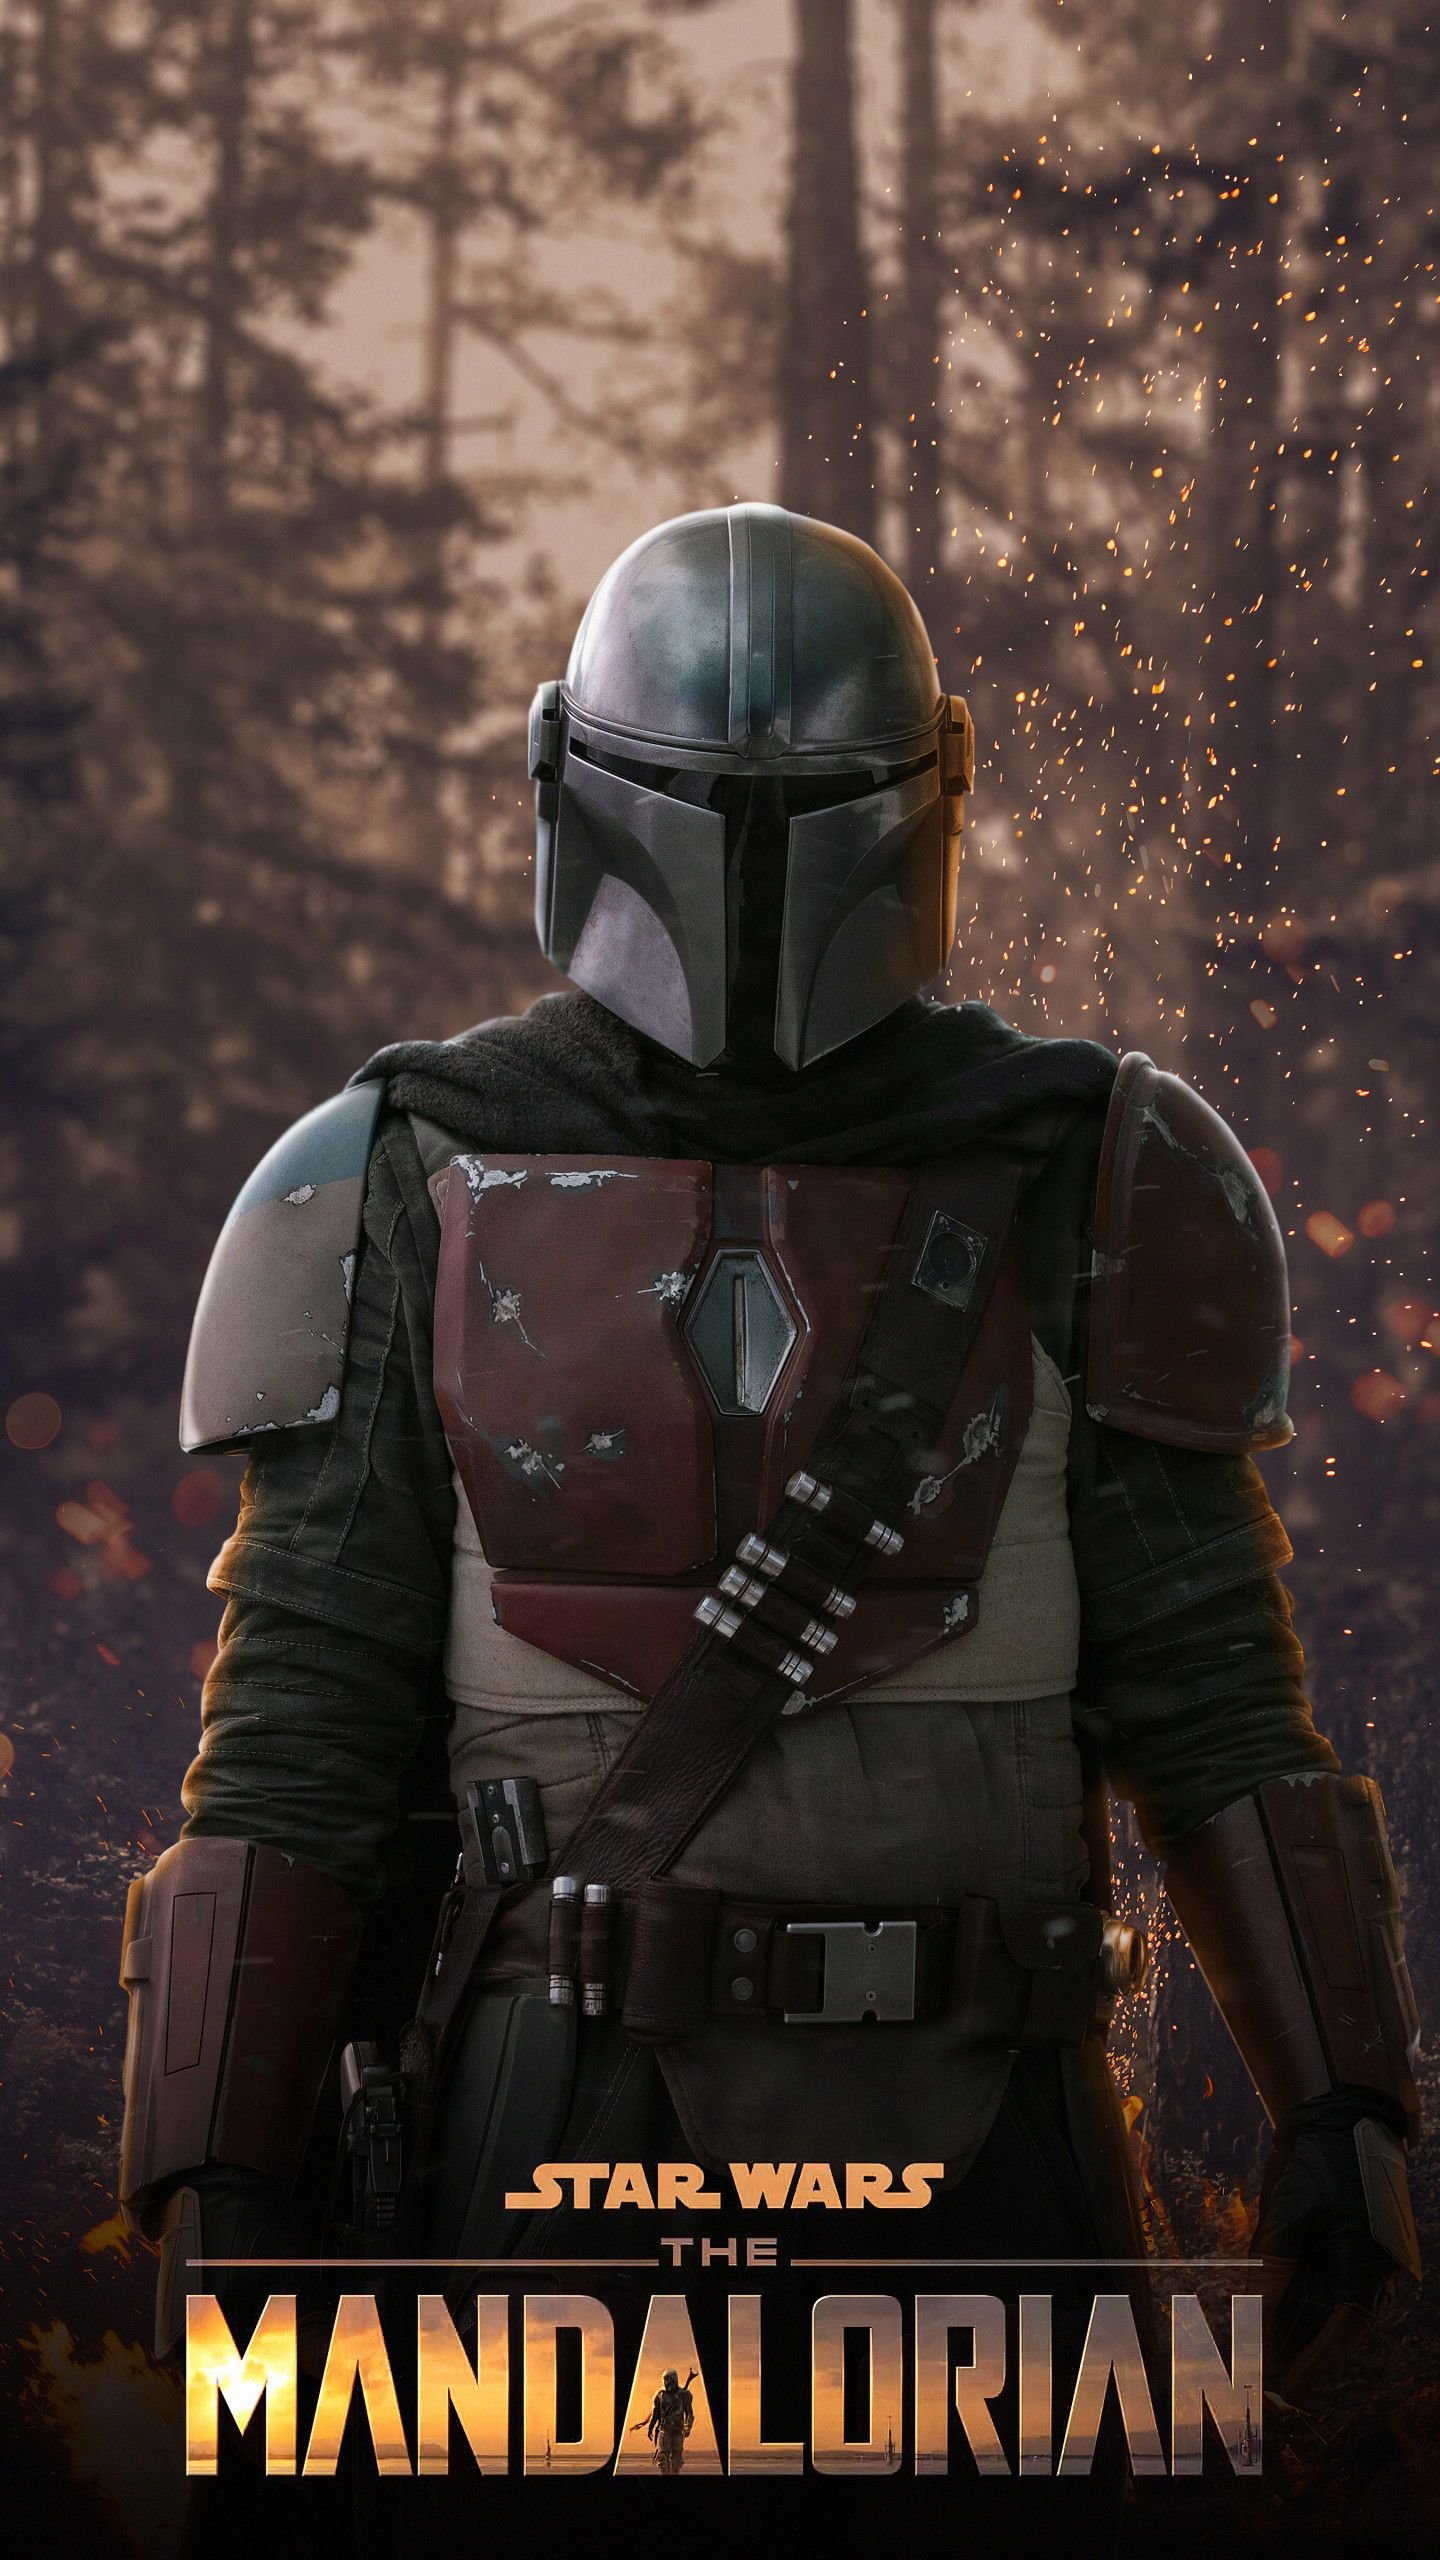 The first episode of The Mandalorian aired on Disney+ on